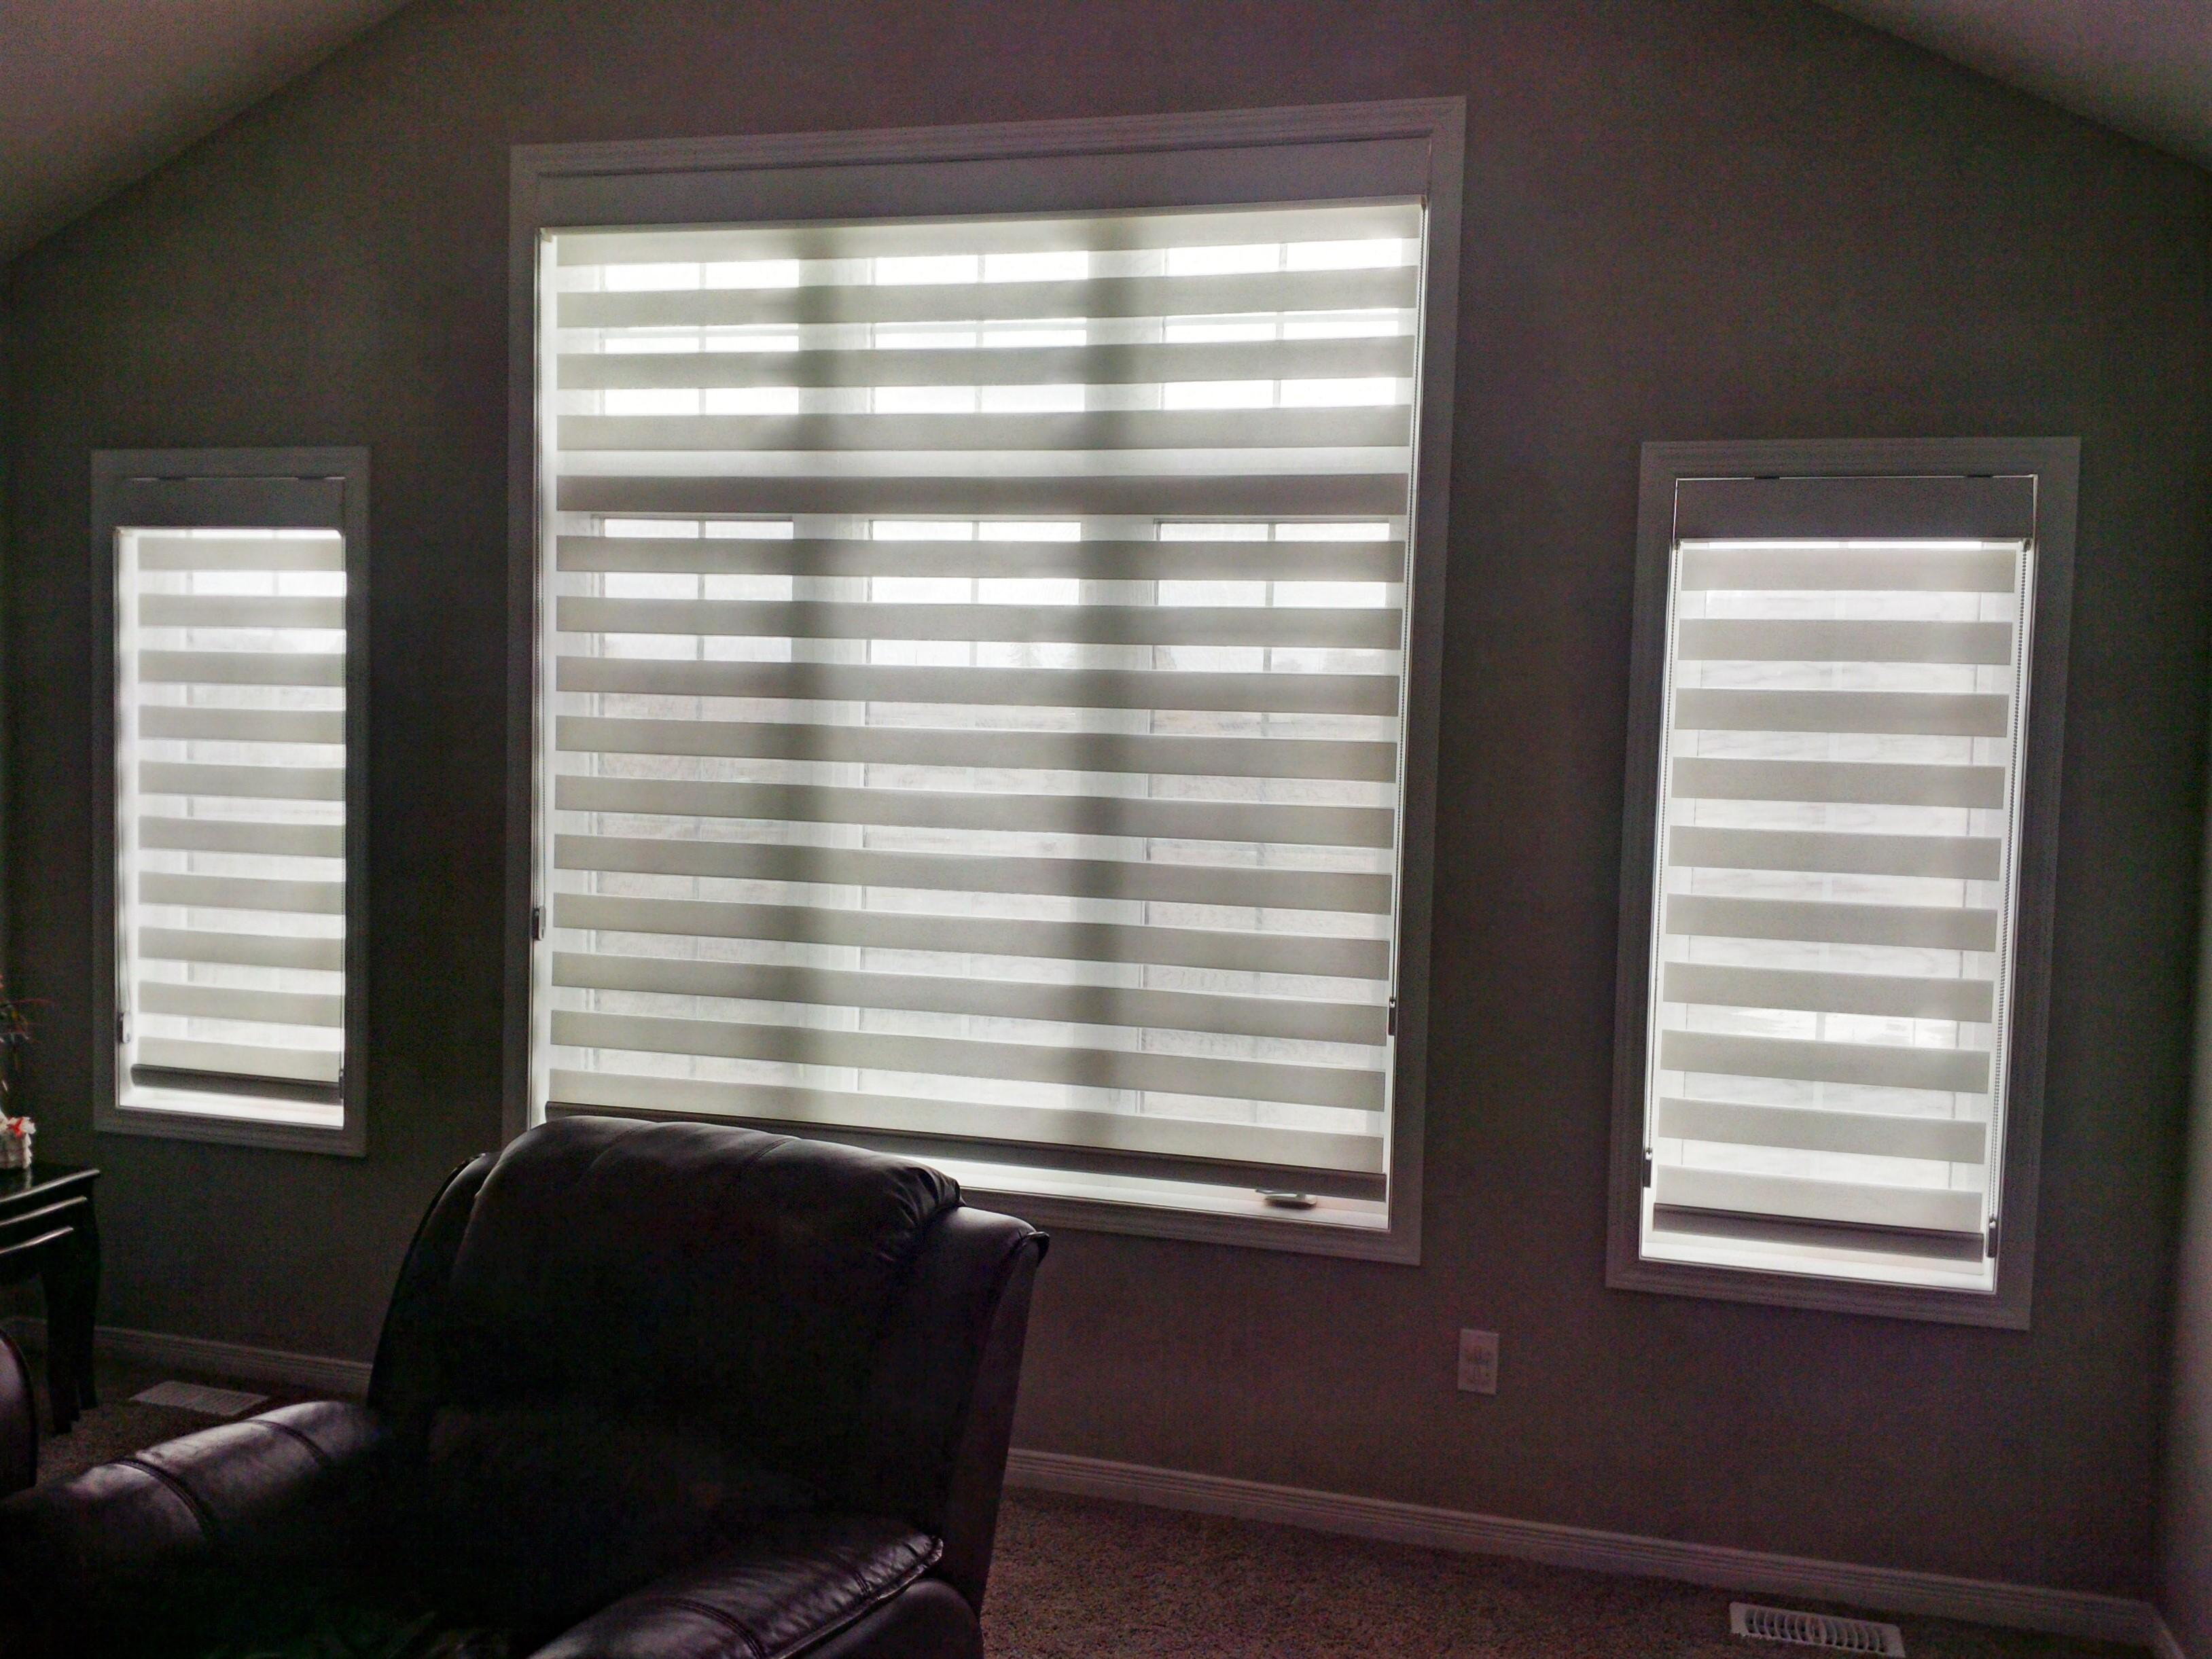 Budget Blinds à Waterloo: These shades are sometimes referred to as 'dual shades' because they really combine two fabrics in one: a soft sheer and a light-filtering privacy fabric.